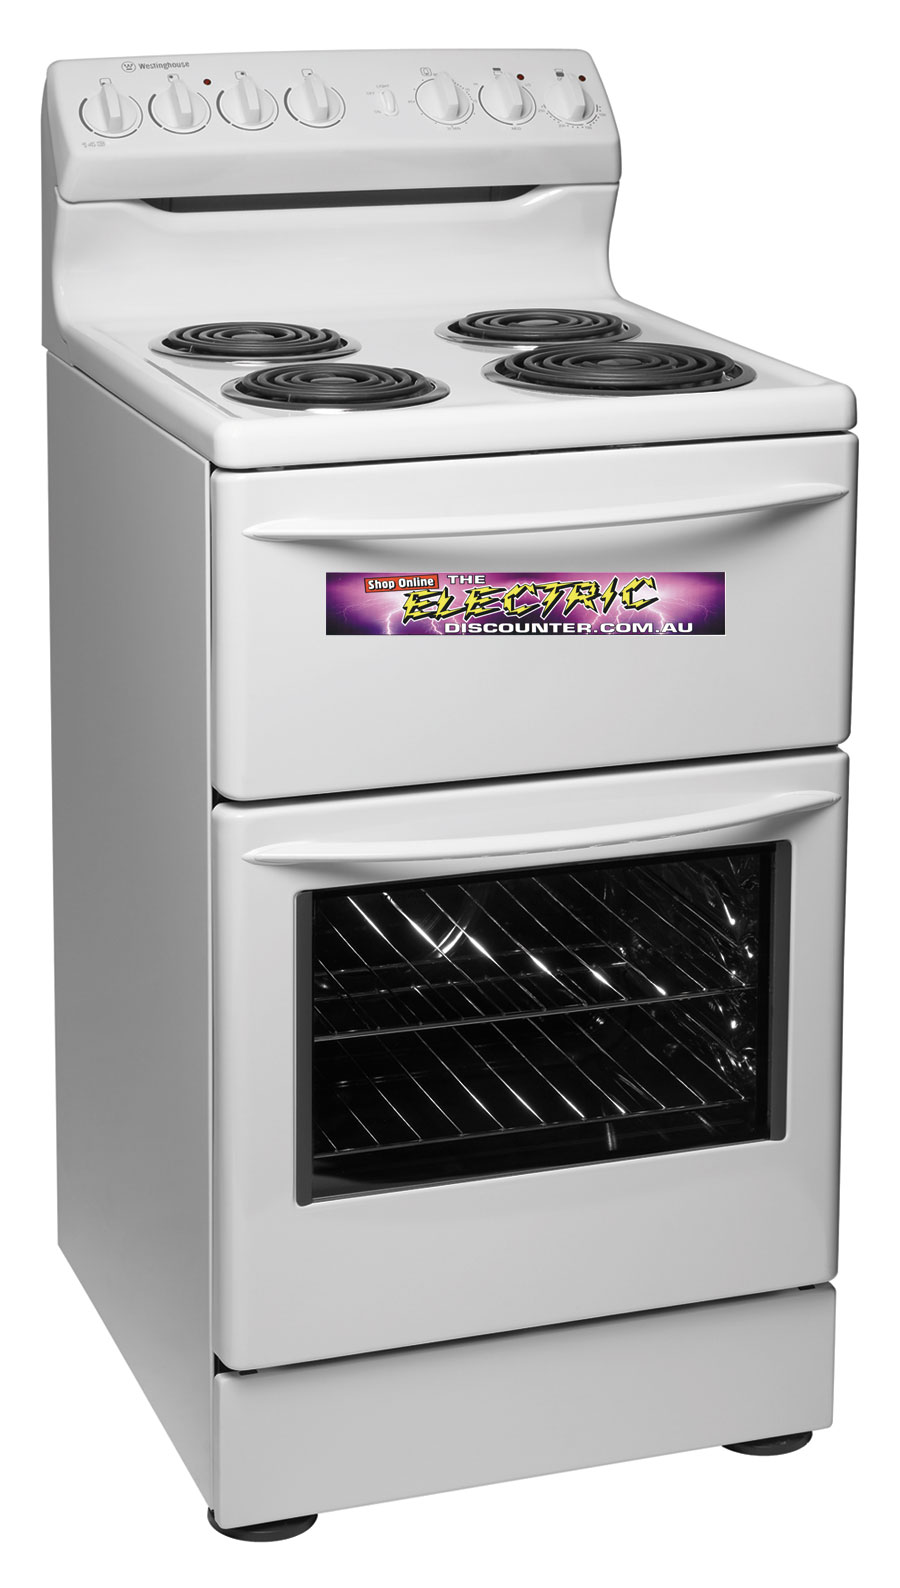 Oven Baking Element >> Types of Ovens - How to Choose an Oven